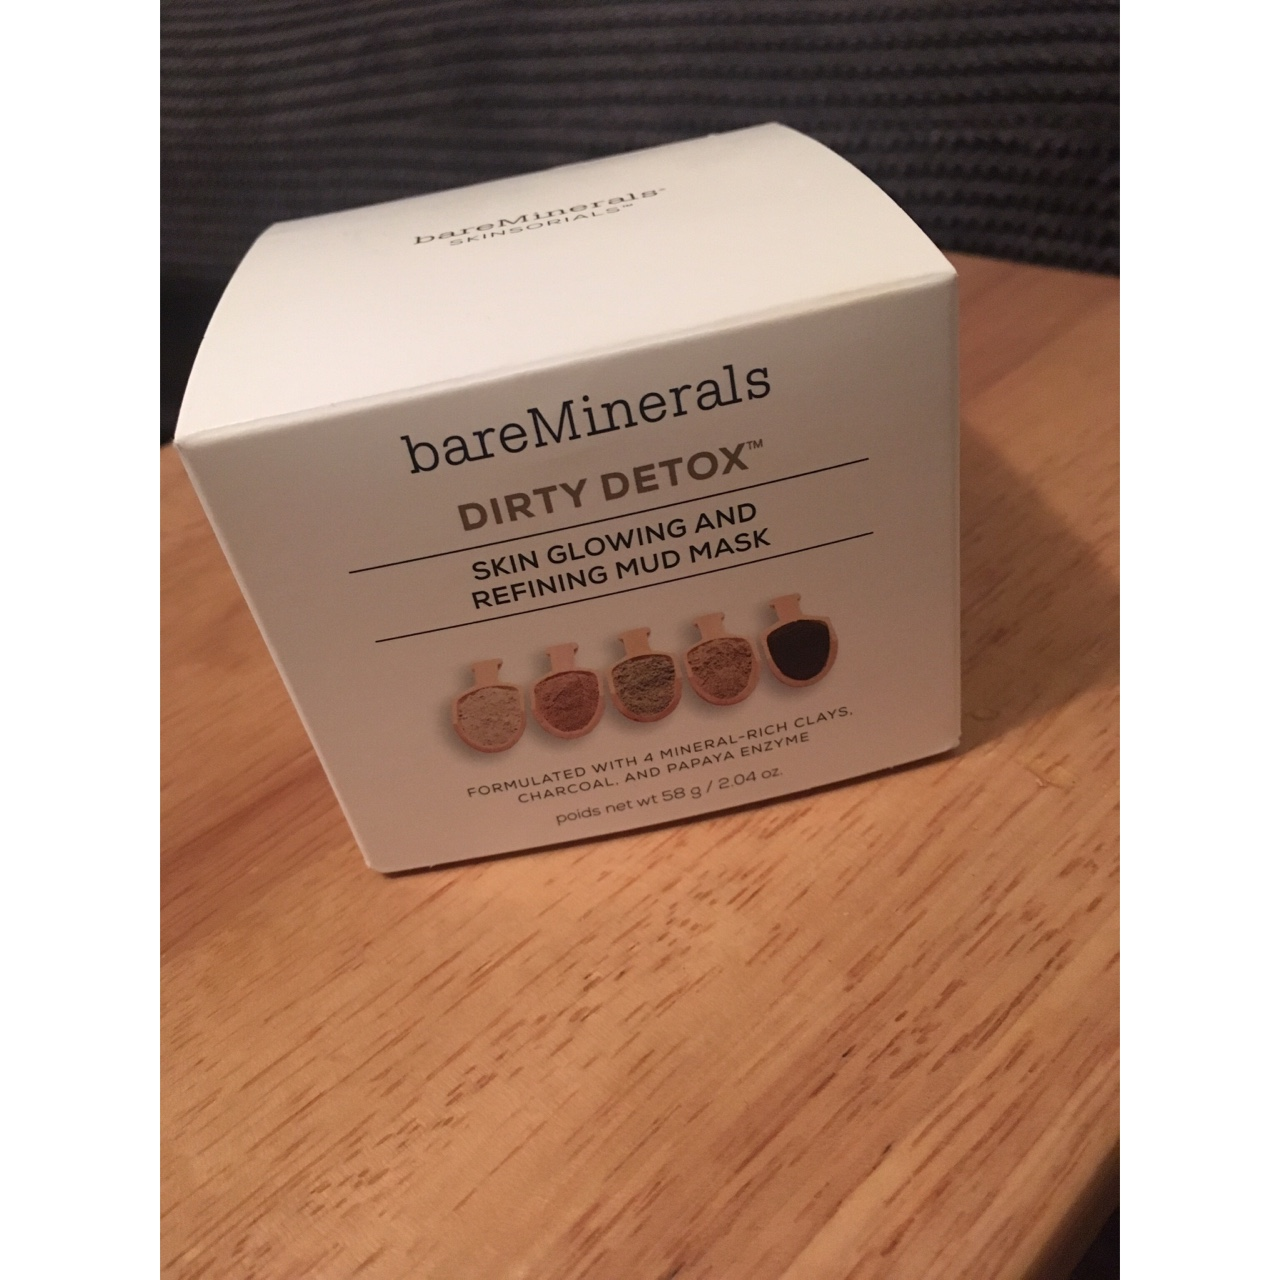 Dirty Detox Skin Glowing & Refining Mud Mask by bareMinerals #7